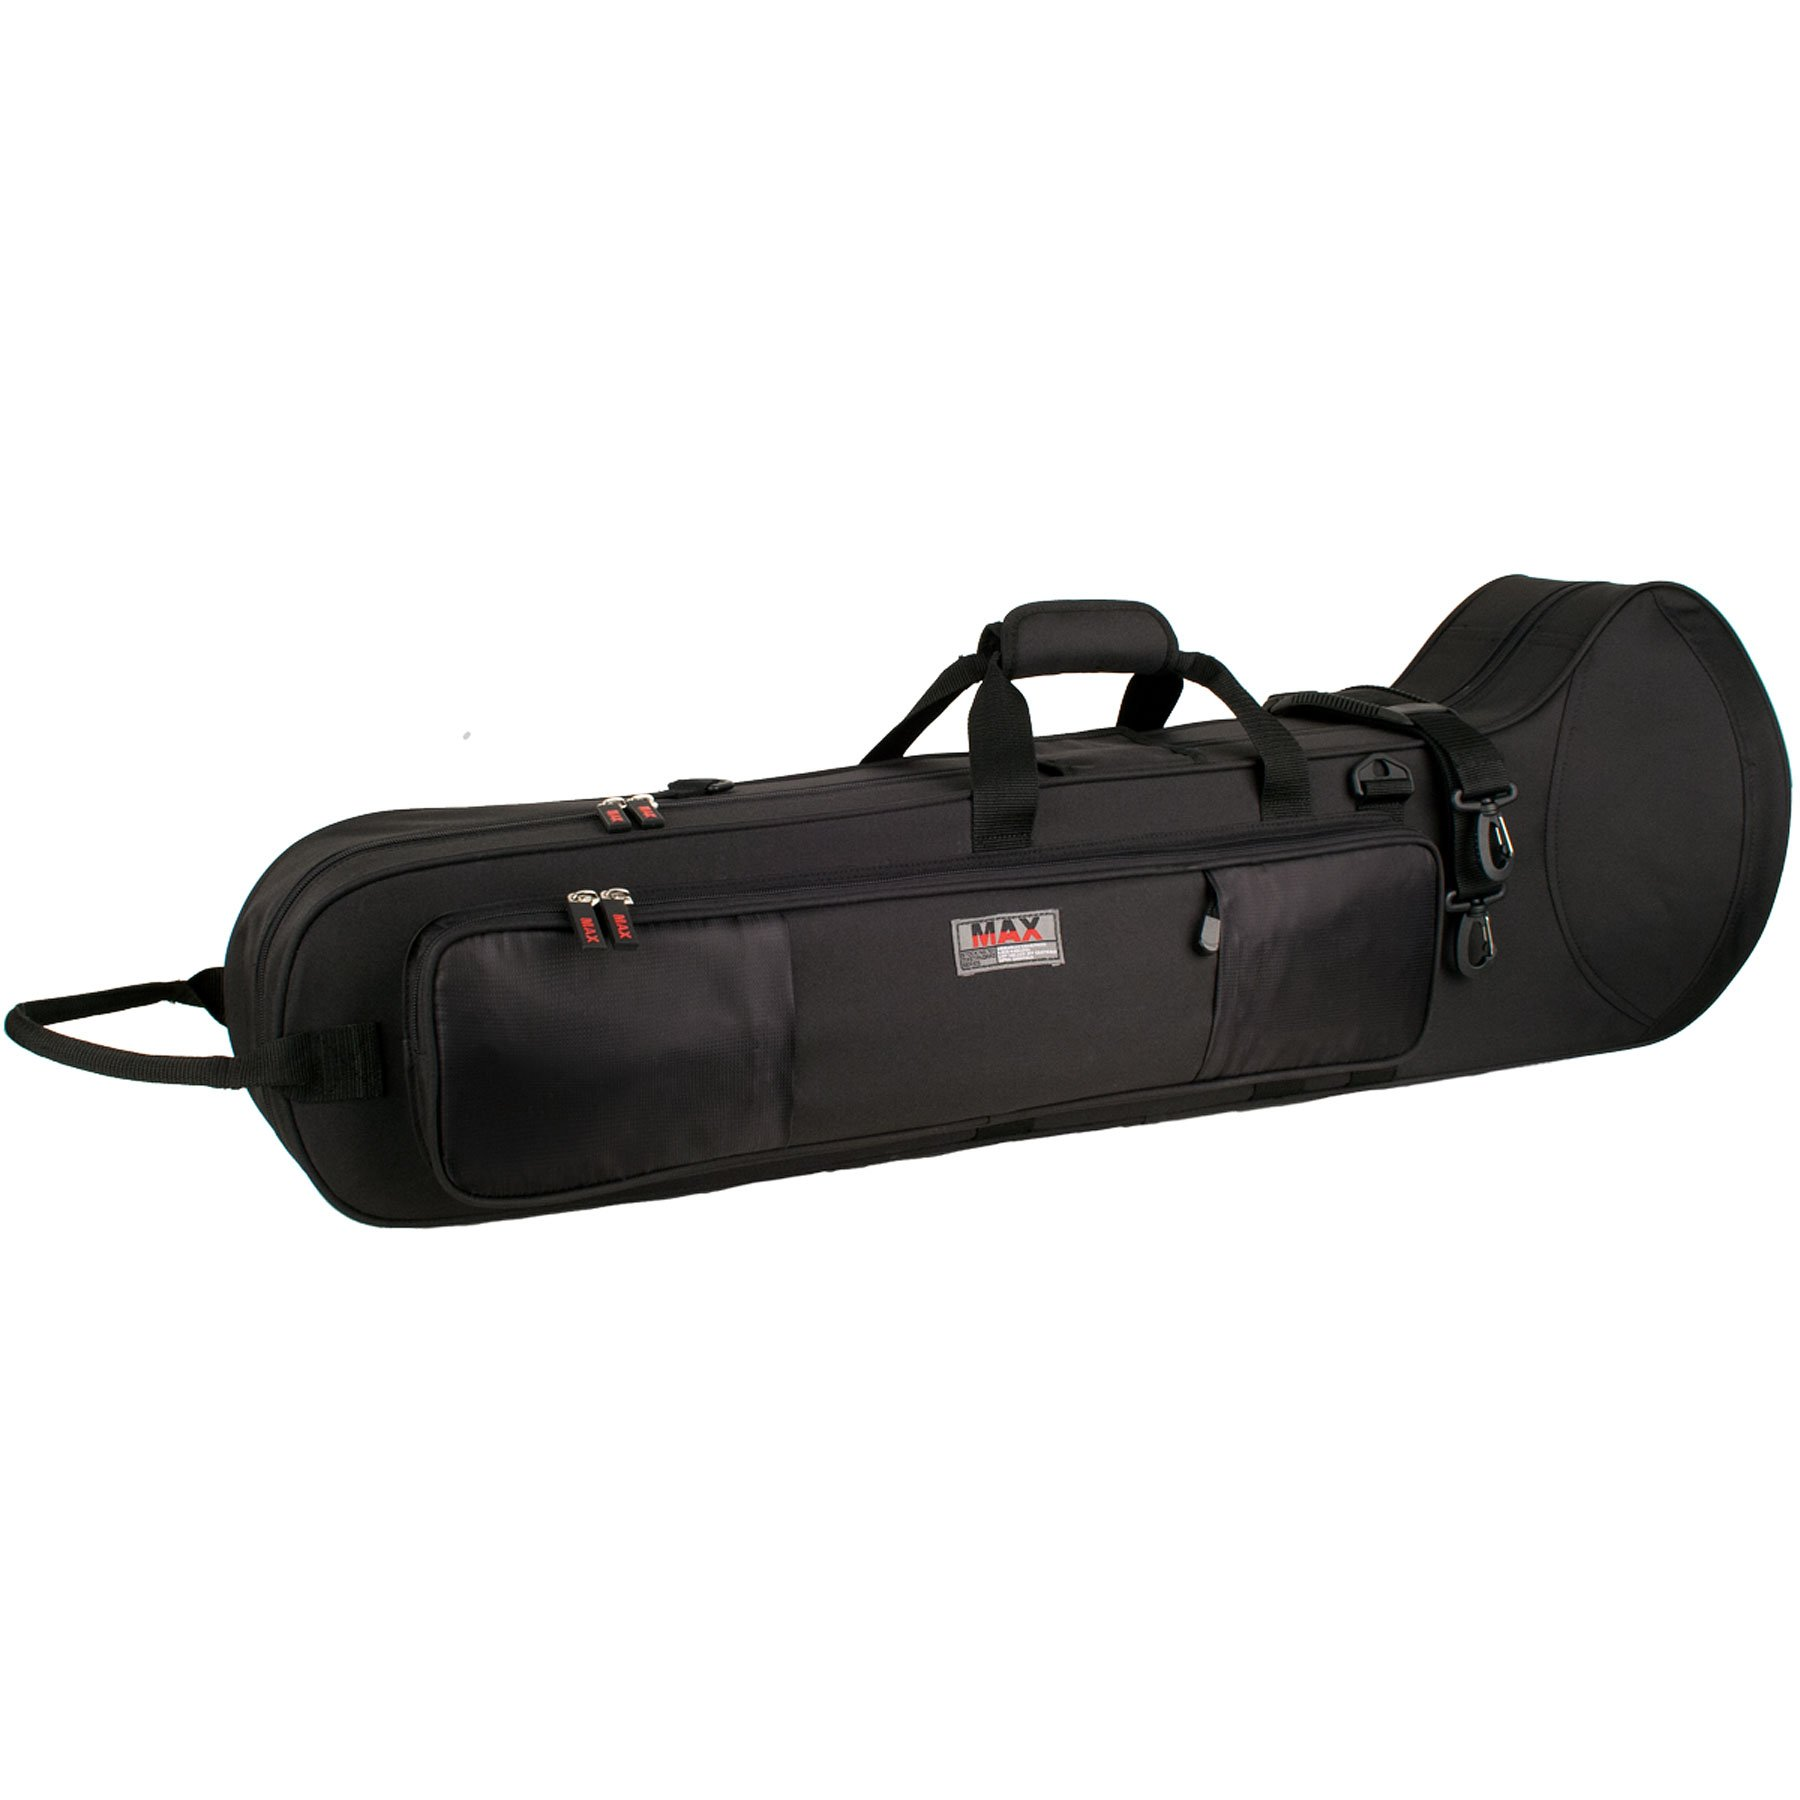 Protec MX306CT Tenor Trombone (F-Trigger or Straight) Case by ProTec